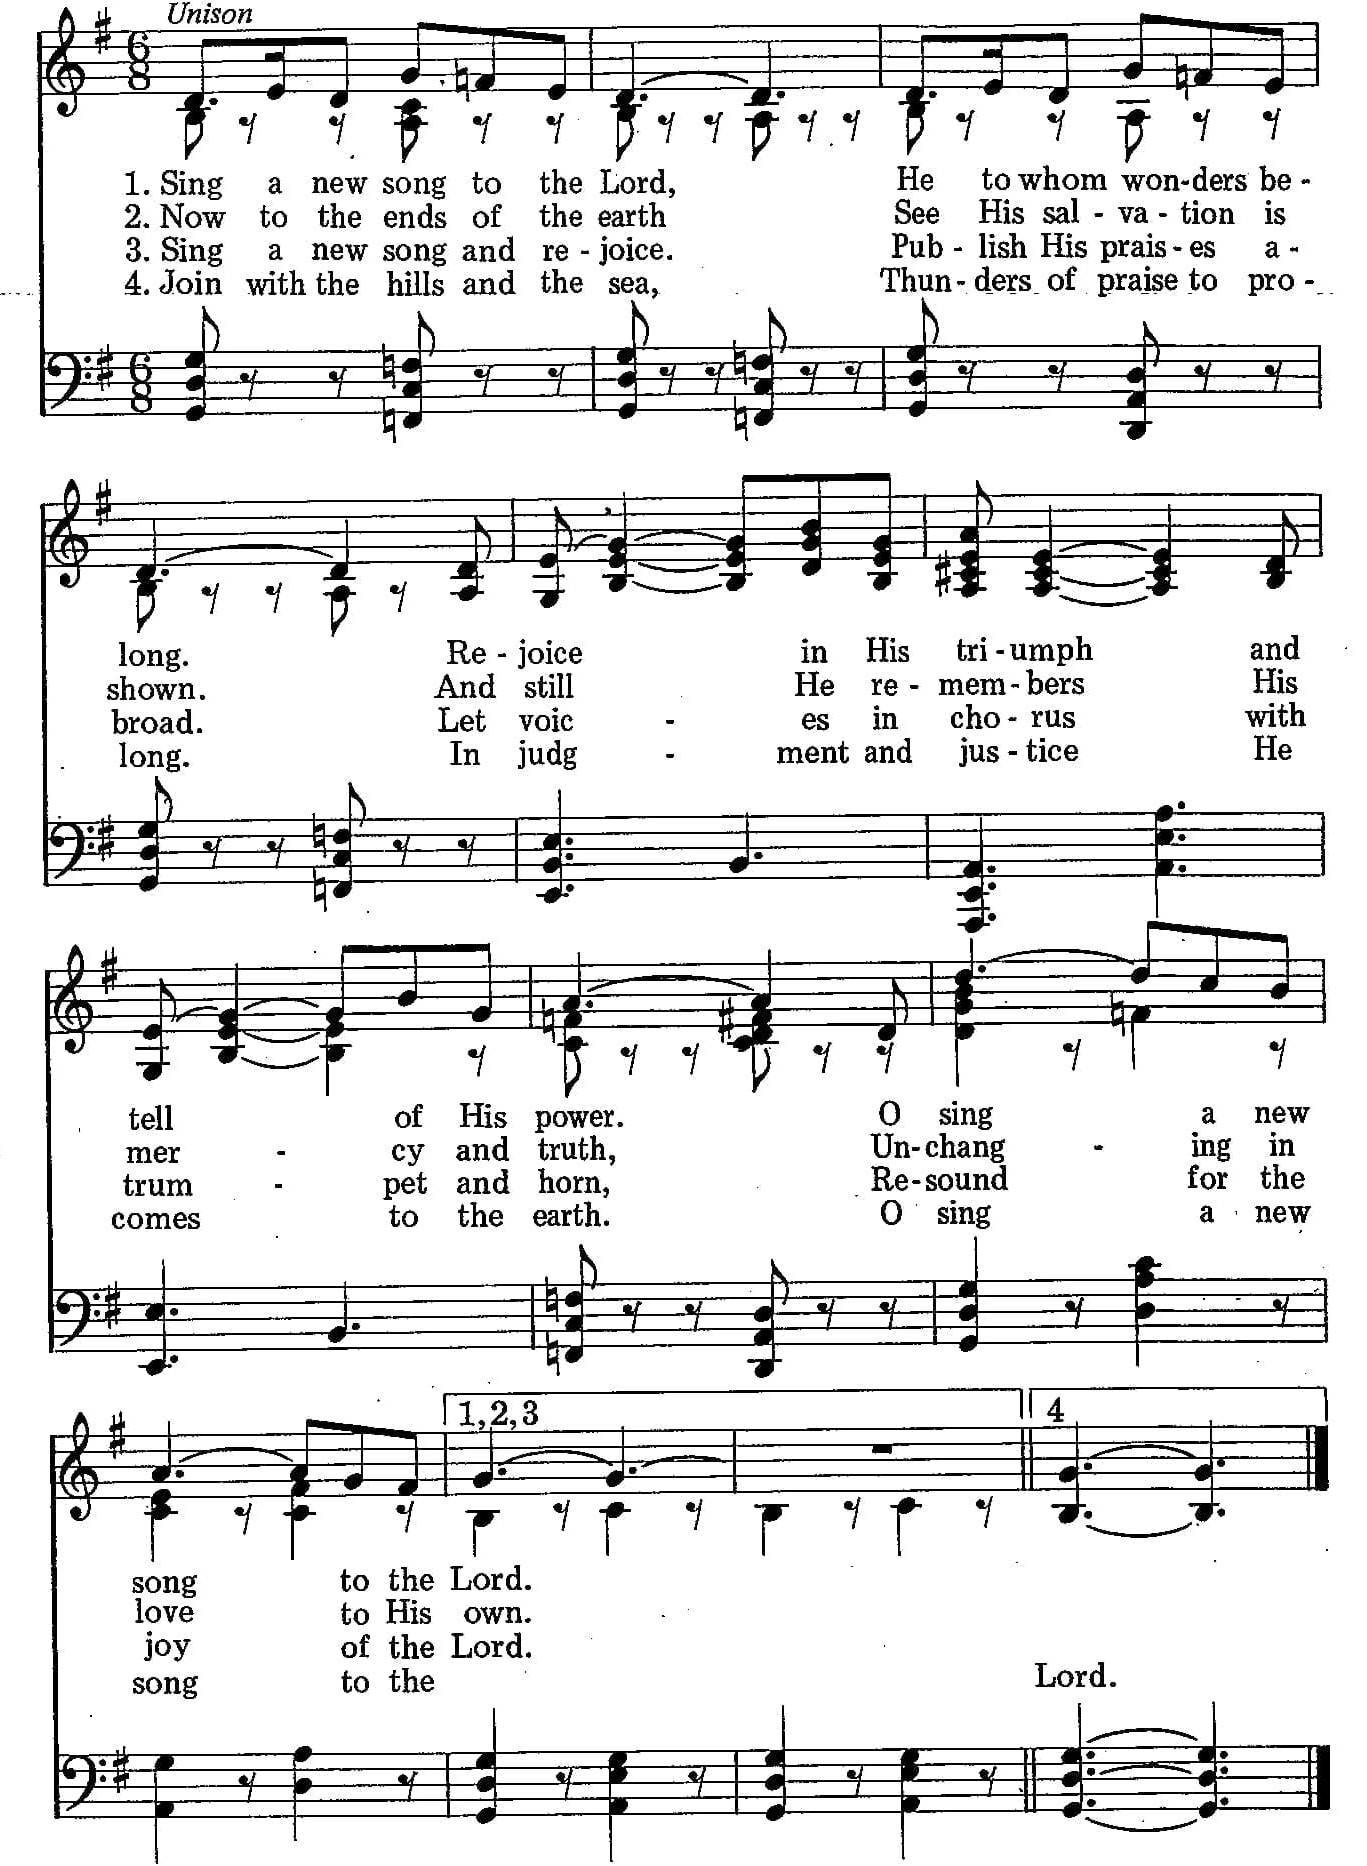 033 – Sing a New Song to the LordSDA HYMNAL | SDA HYMNAL